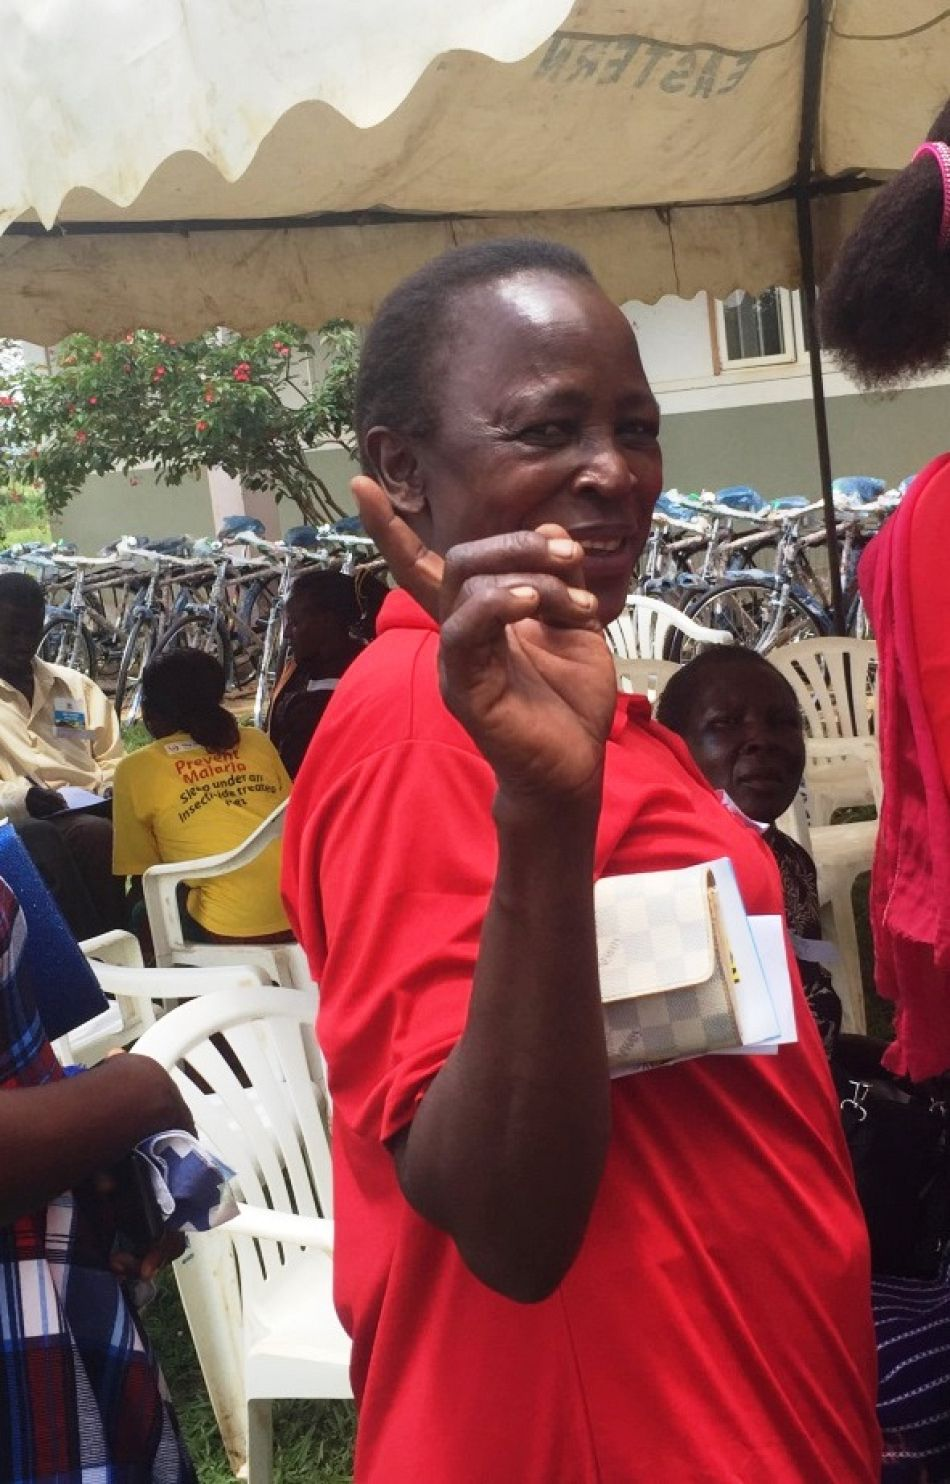 pHer colleague Ms Jane Odoi village health team member at Auyo B Village said ldquoThank you so much Malaria Consortium may God richly bless all the hands that have given to us These bicycles are really going to make our work easier since we can reach our patients quicker The bicycles are also of good quality and the spare parts are easily available here I will keep mine for a very long time to serve my people Thank yourdquop